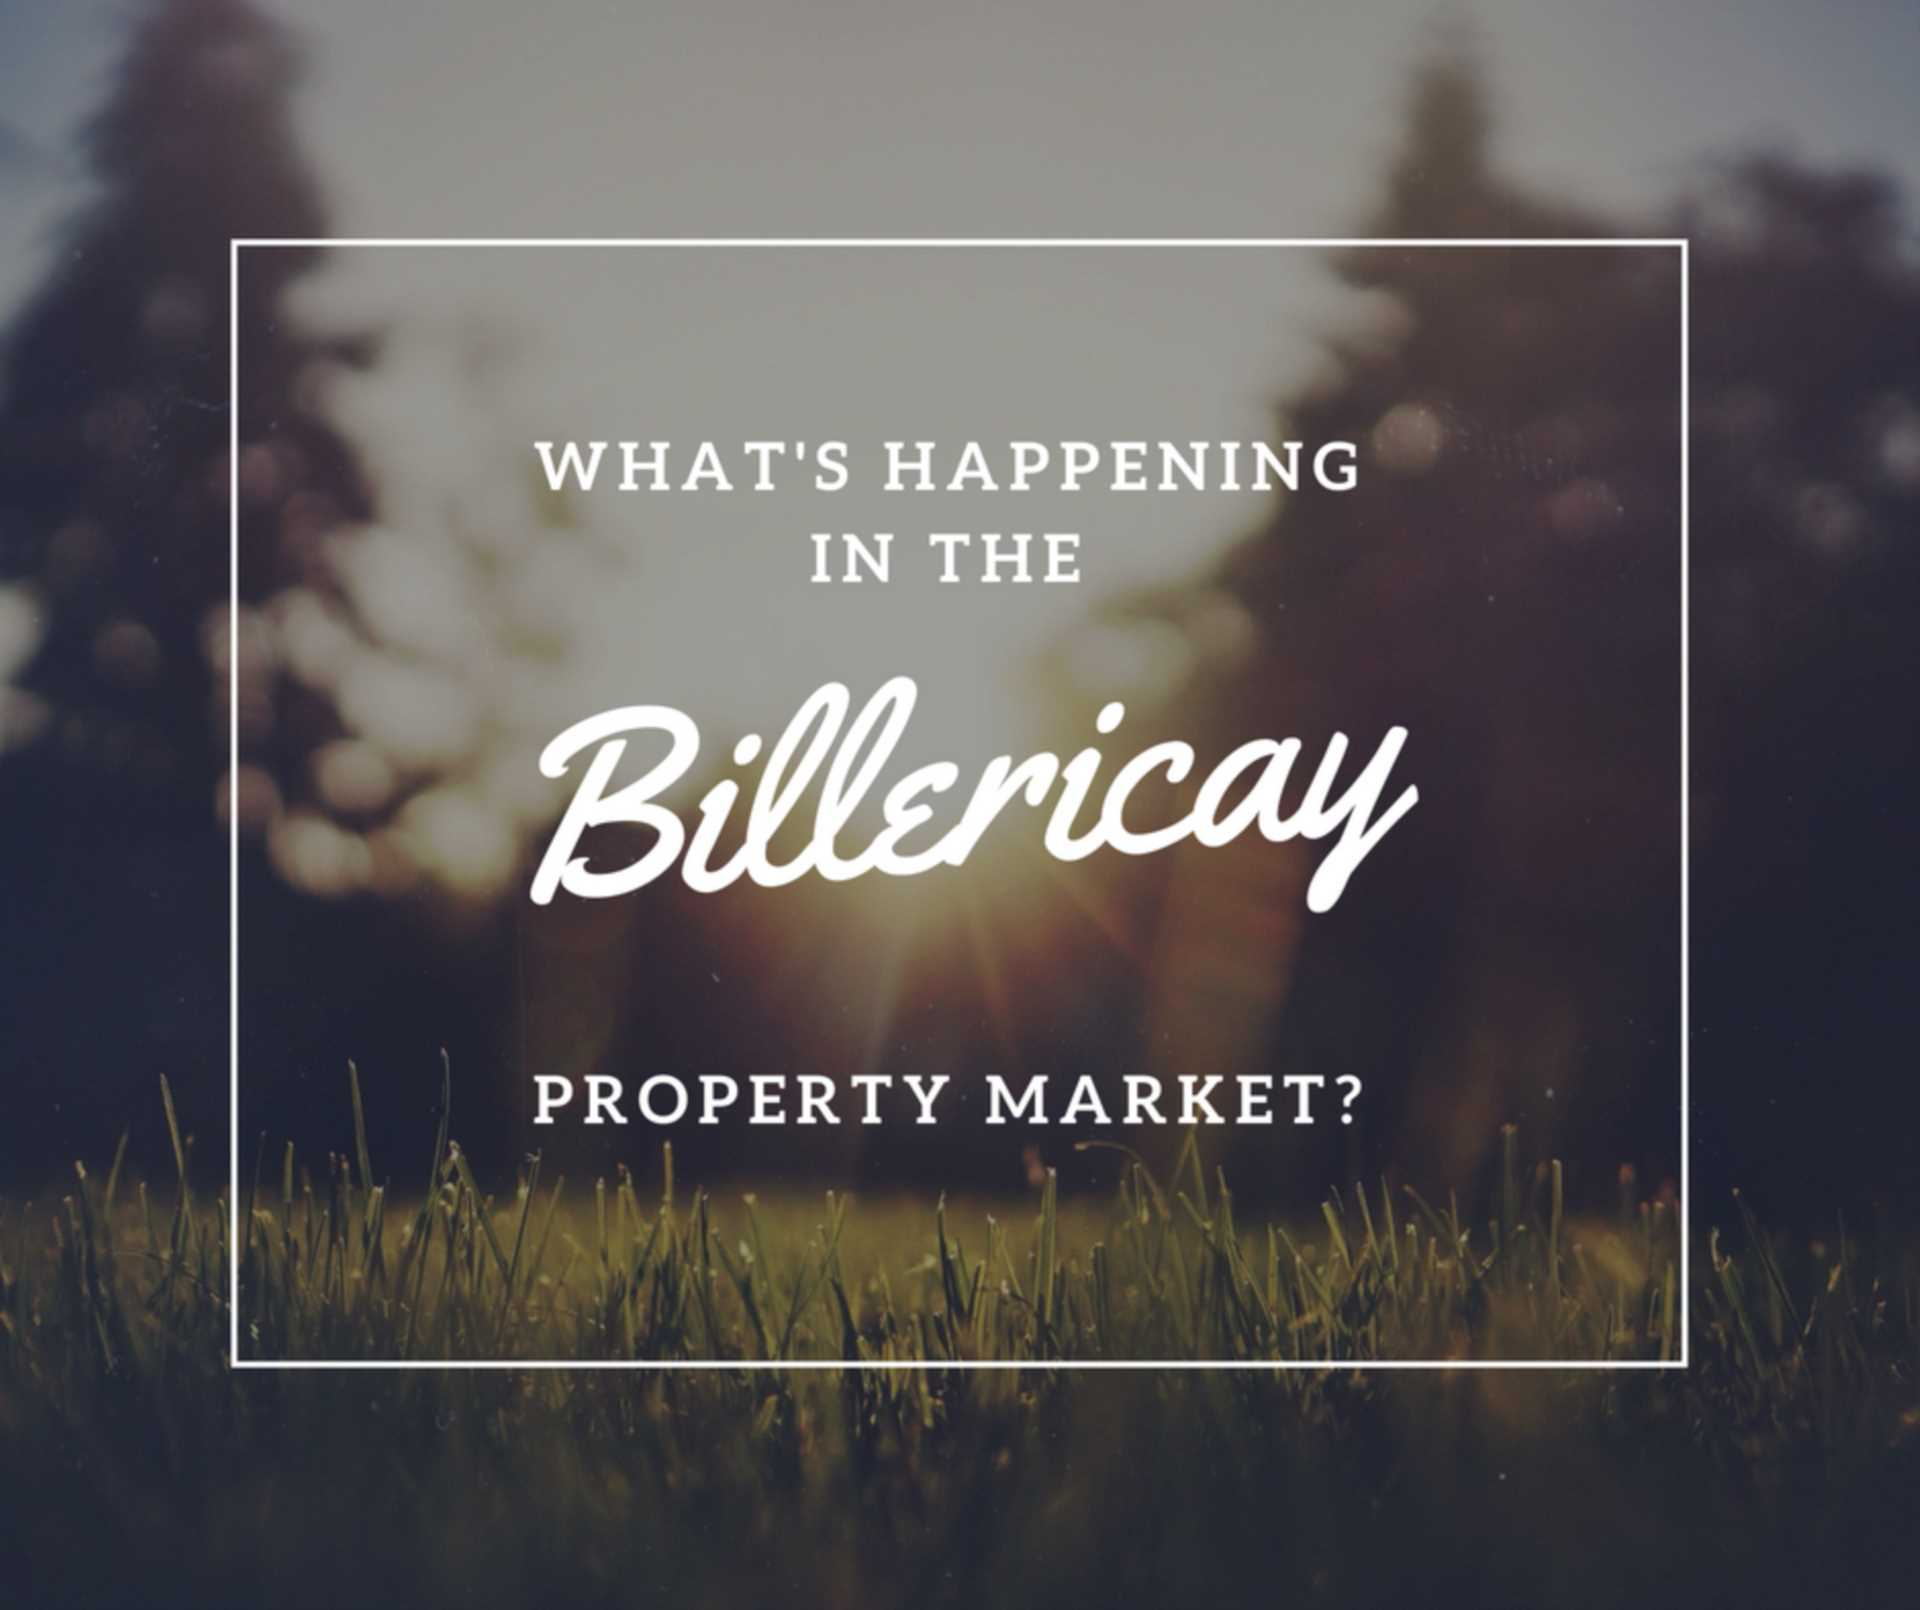 The Billericay Property market